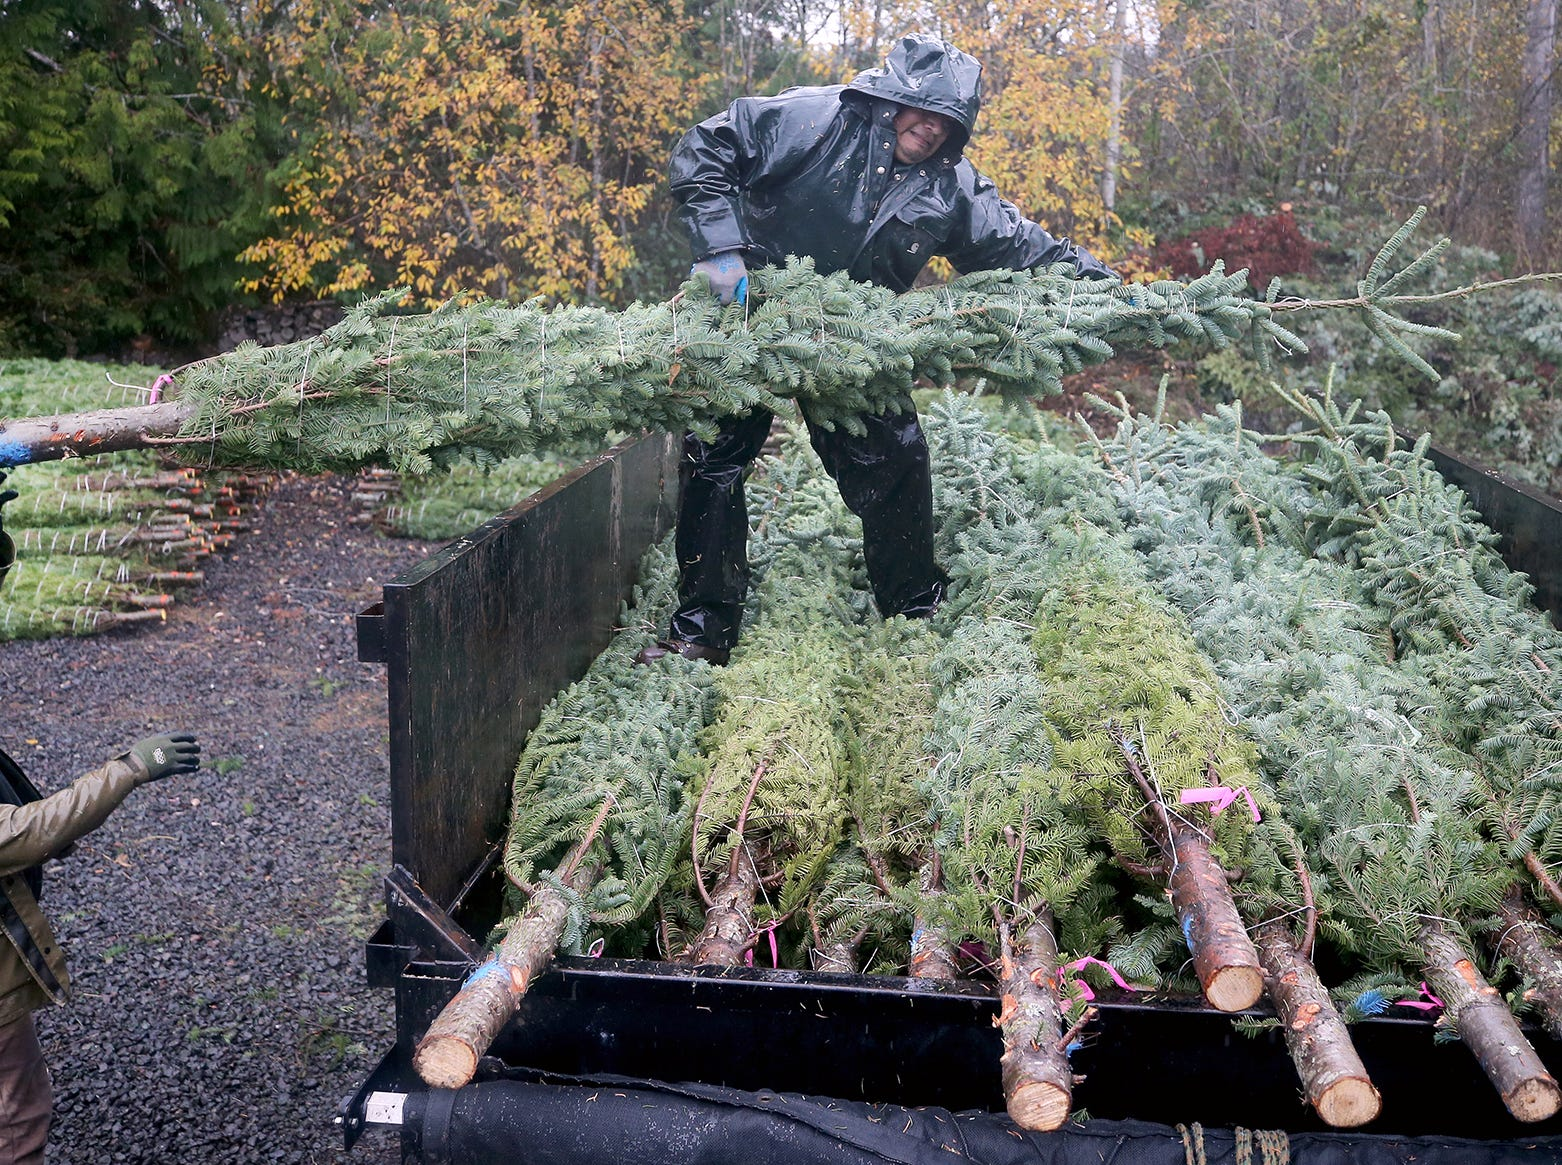 Jose Marcial, left, passes a large Christmas tree to Benny Flores at the Olmsted Tree Farm on Wednesday, November, 21, 2018 at the tree farm in Poulsbo. The family has run a tree business for 50 years. Friday, November 23, is the opening day for the Poulsbo U-cut tree farm.